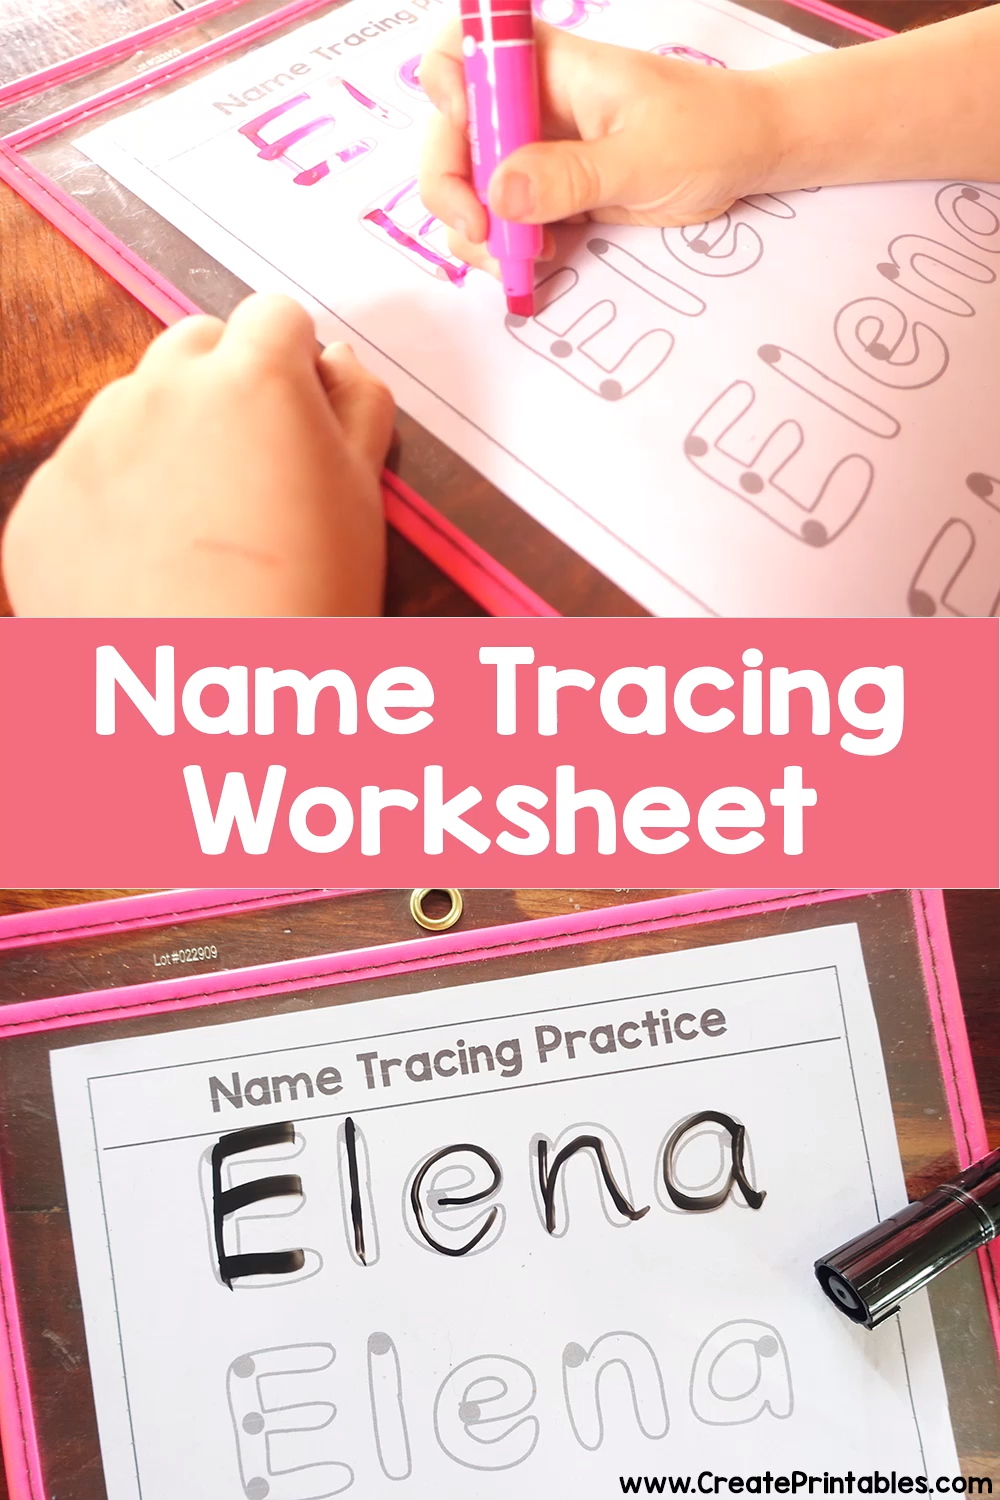 Get A Free Name Tracing Practice Worksheet With Your Childs within Pre K Custom Name Tracing